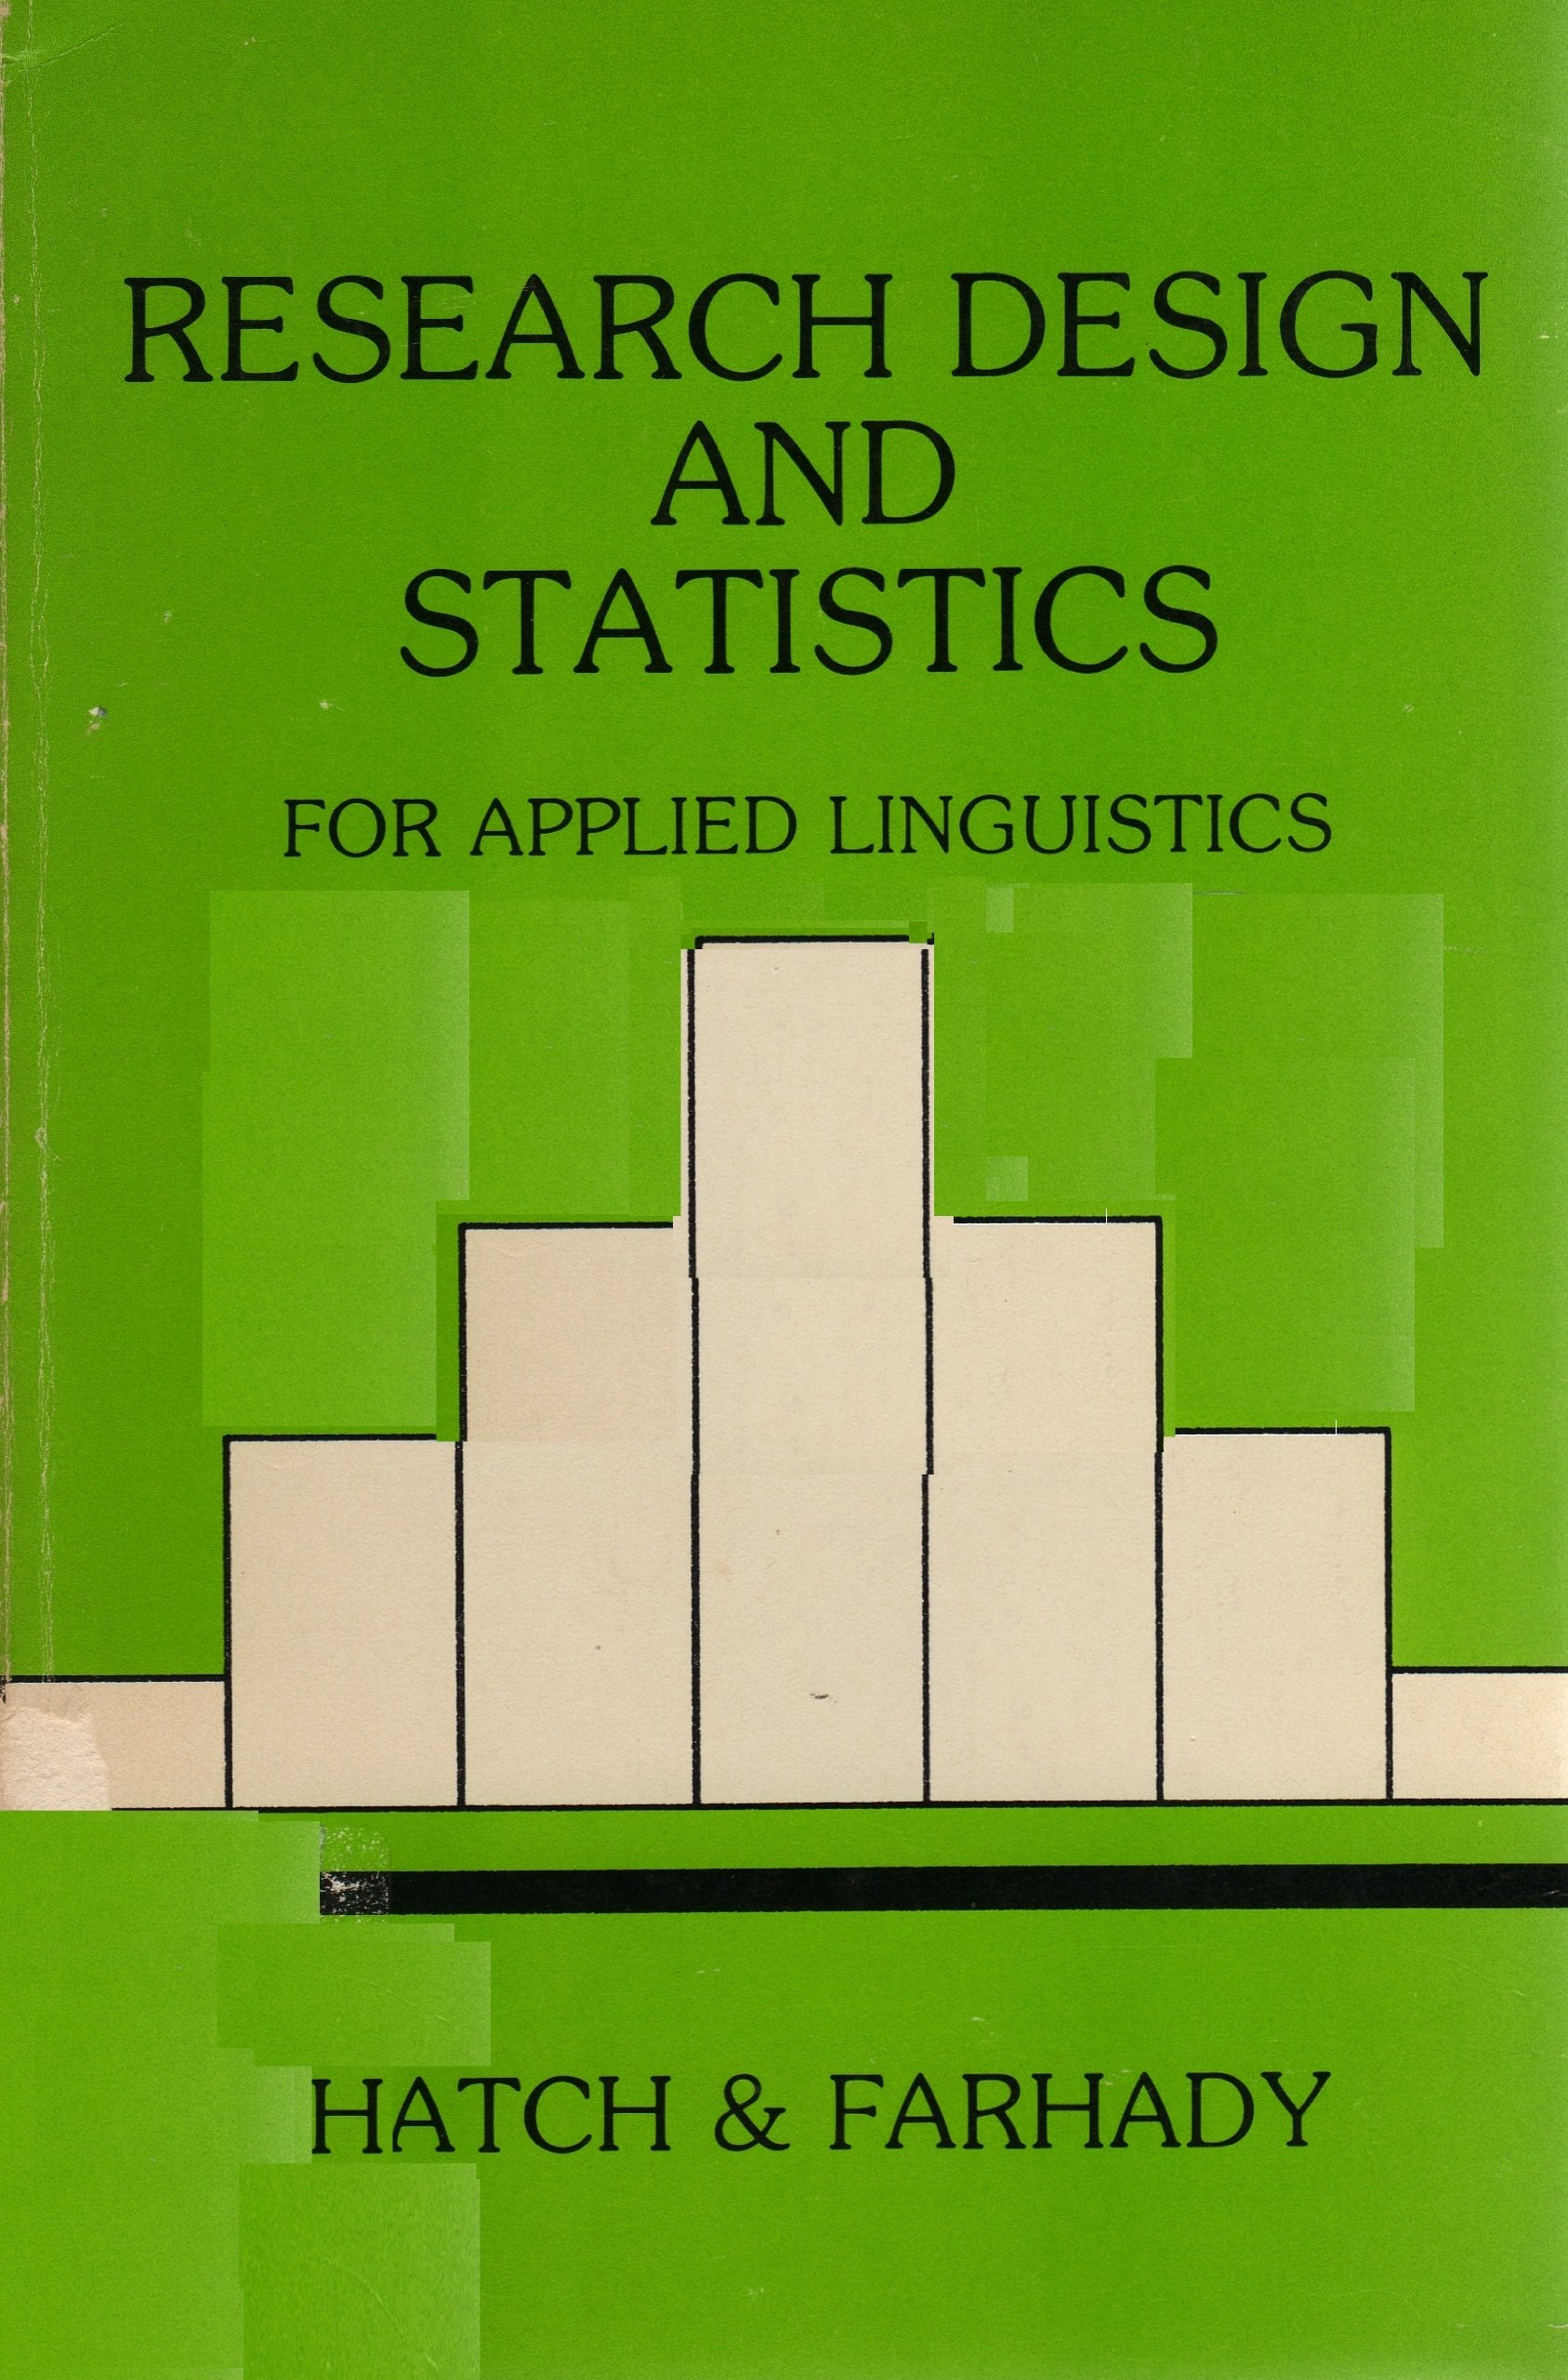 Research design and statistics for applied linguistics evelyn research design and statistics for applied linguistics evelyn marcussen hatch 9780883772027 amazon books fandeluxe Choice Image